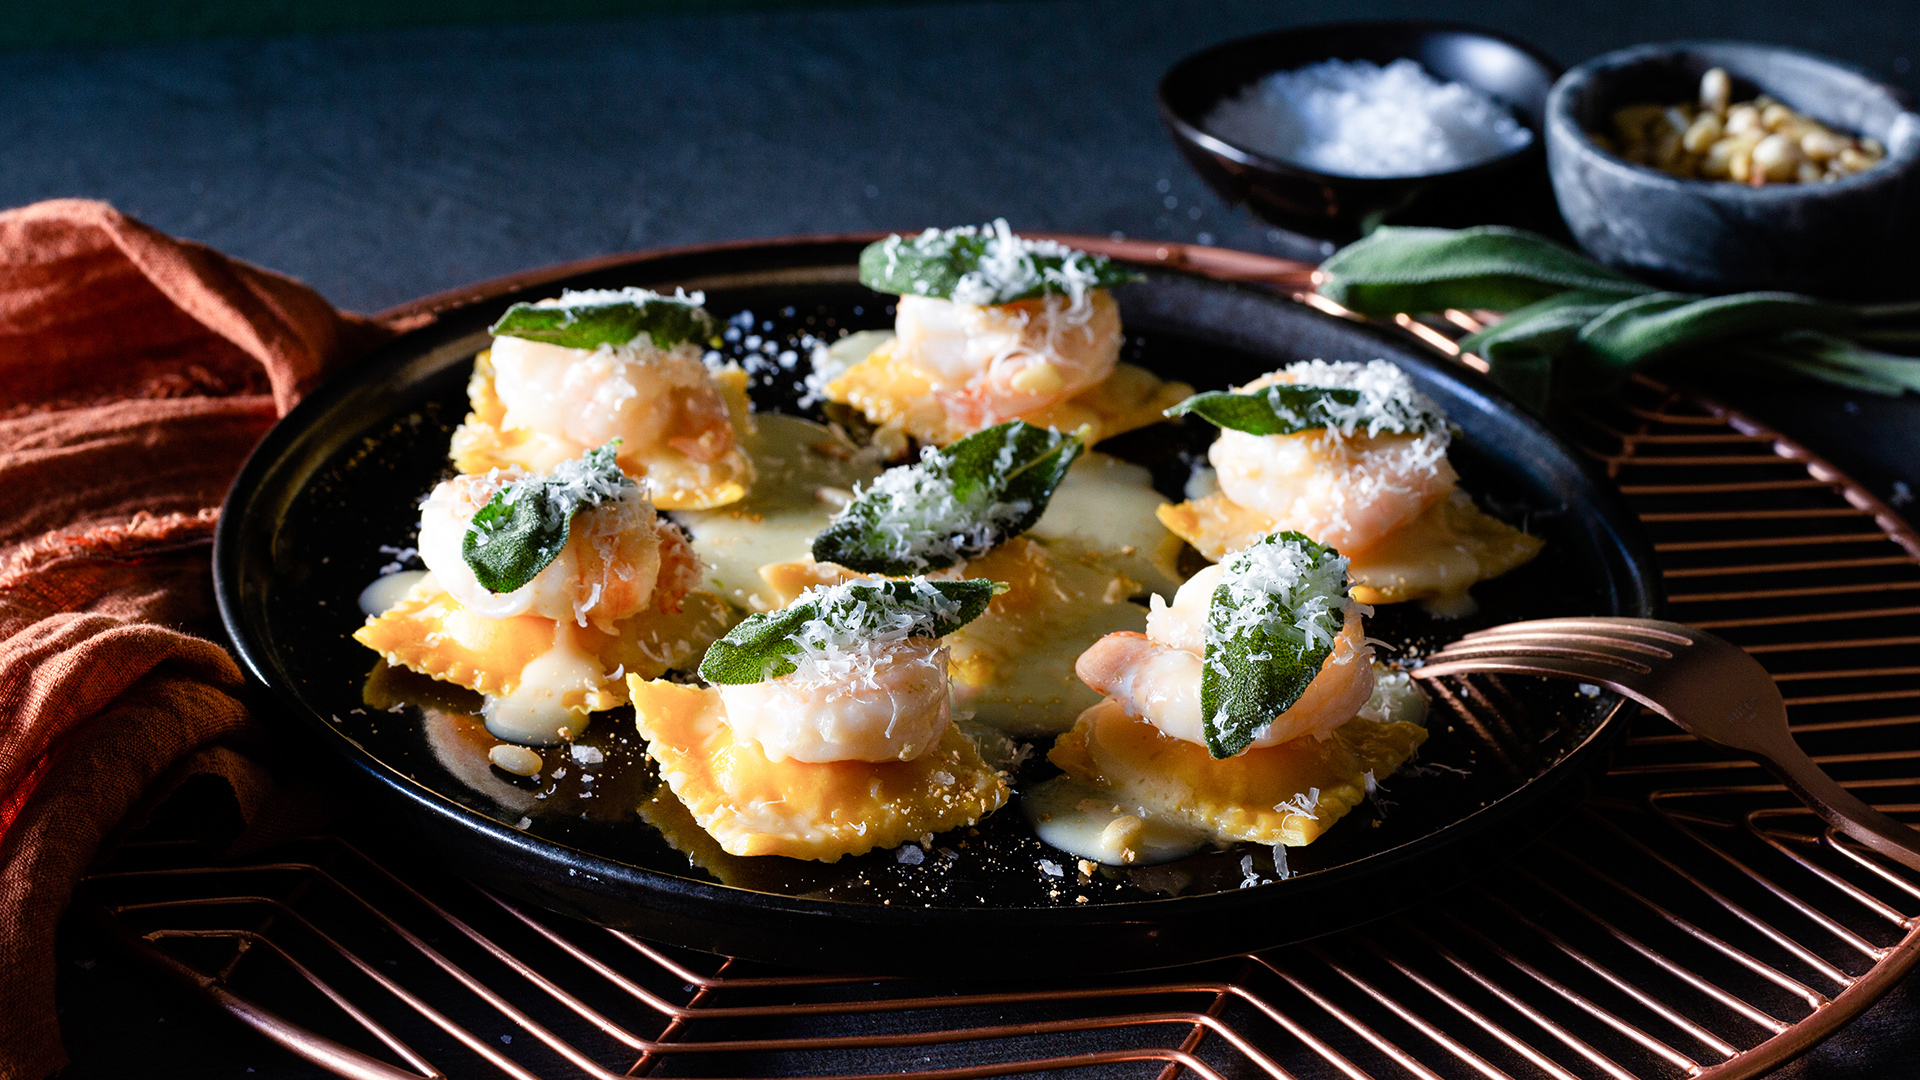 Butternut Squash Ravioli With Prawns | Cactus Club Cafe